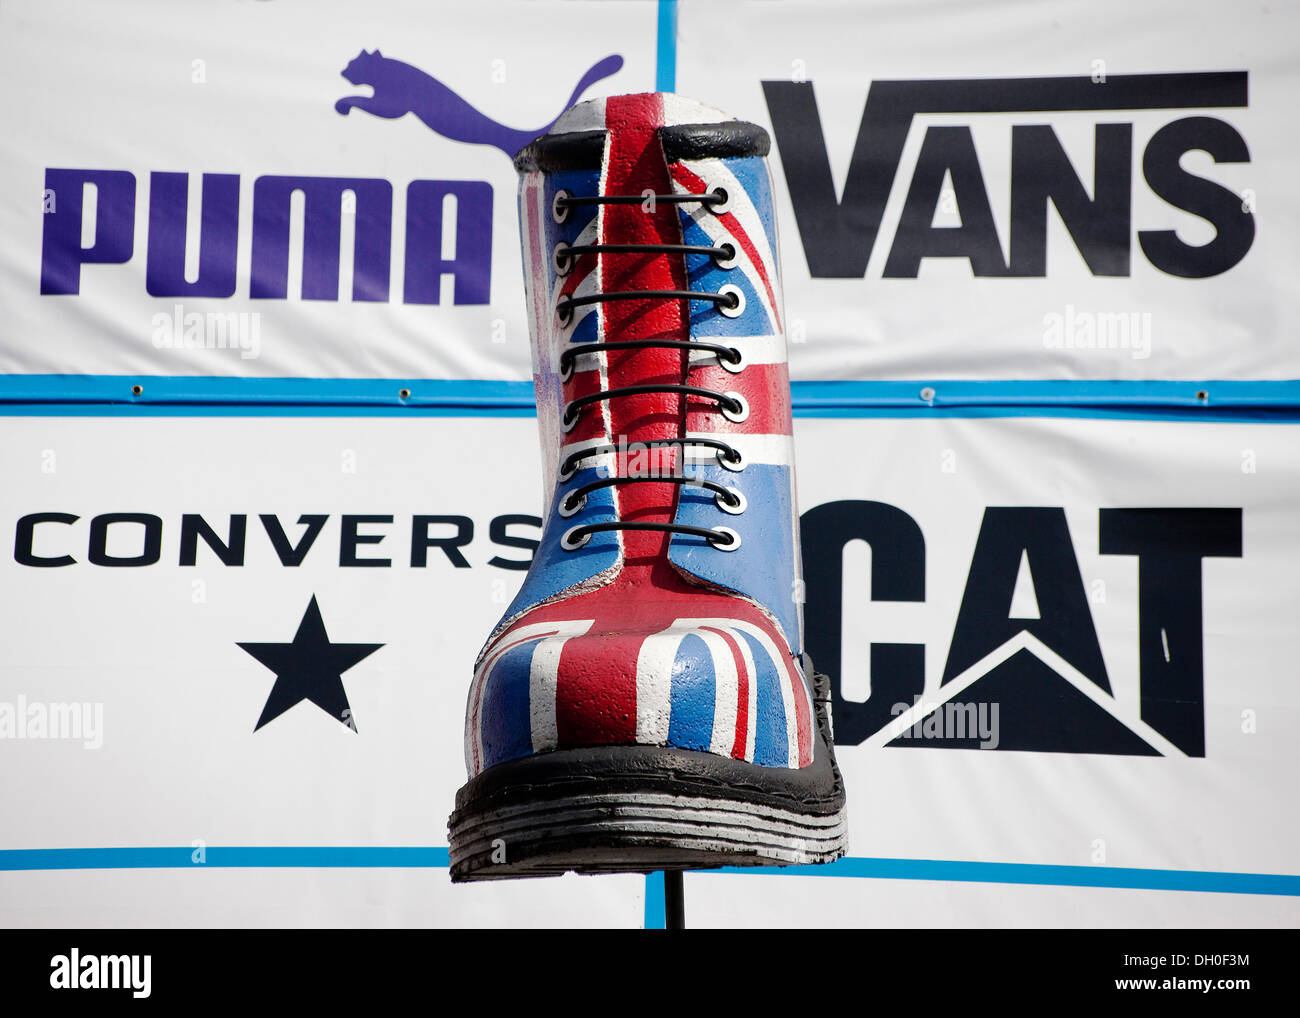 Giant larger than life replica Dr martin boot with union flag design with logo's of Puma Vans Converse Cat printed behind - Stock Image